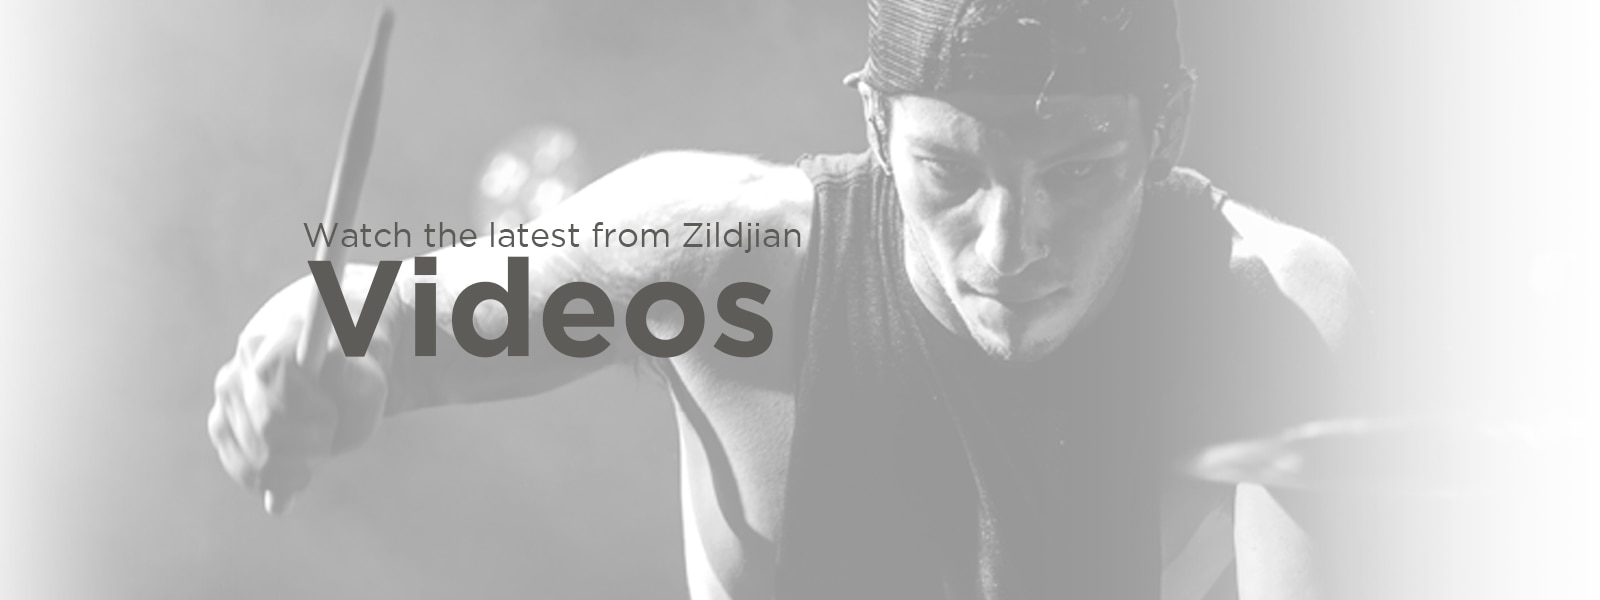 Zildjian Video